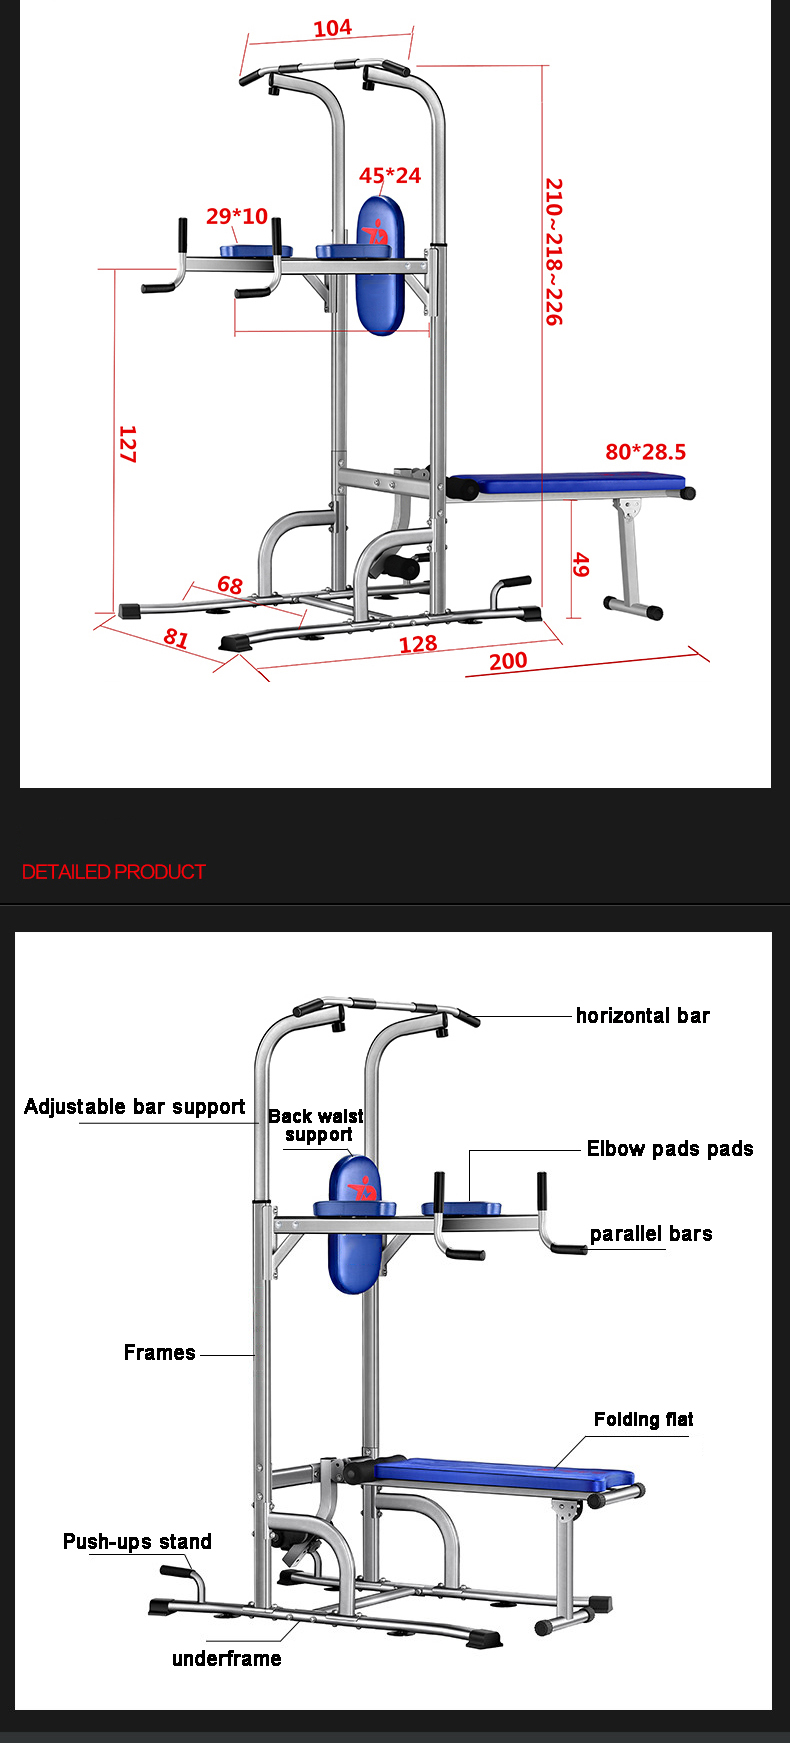 Indoor body built pull-up equipment sports for home gym